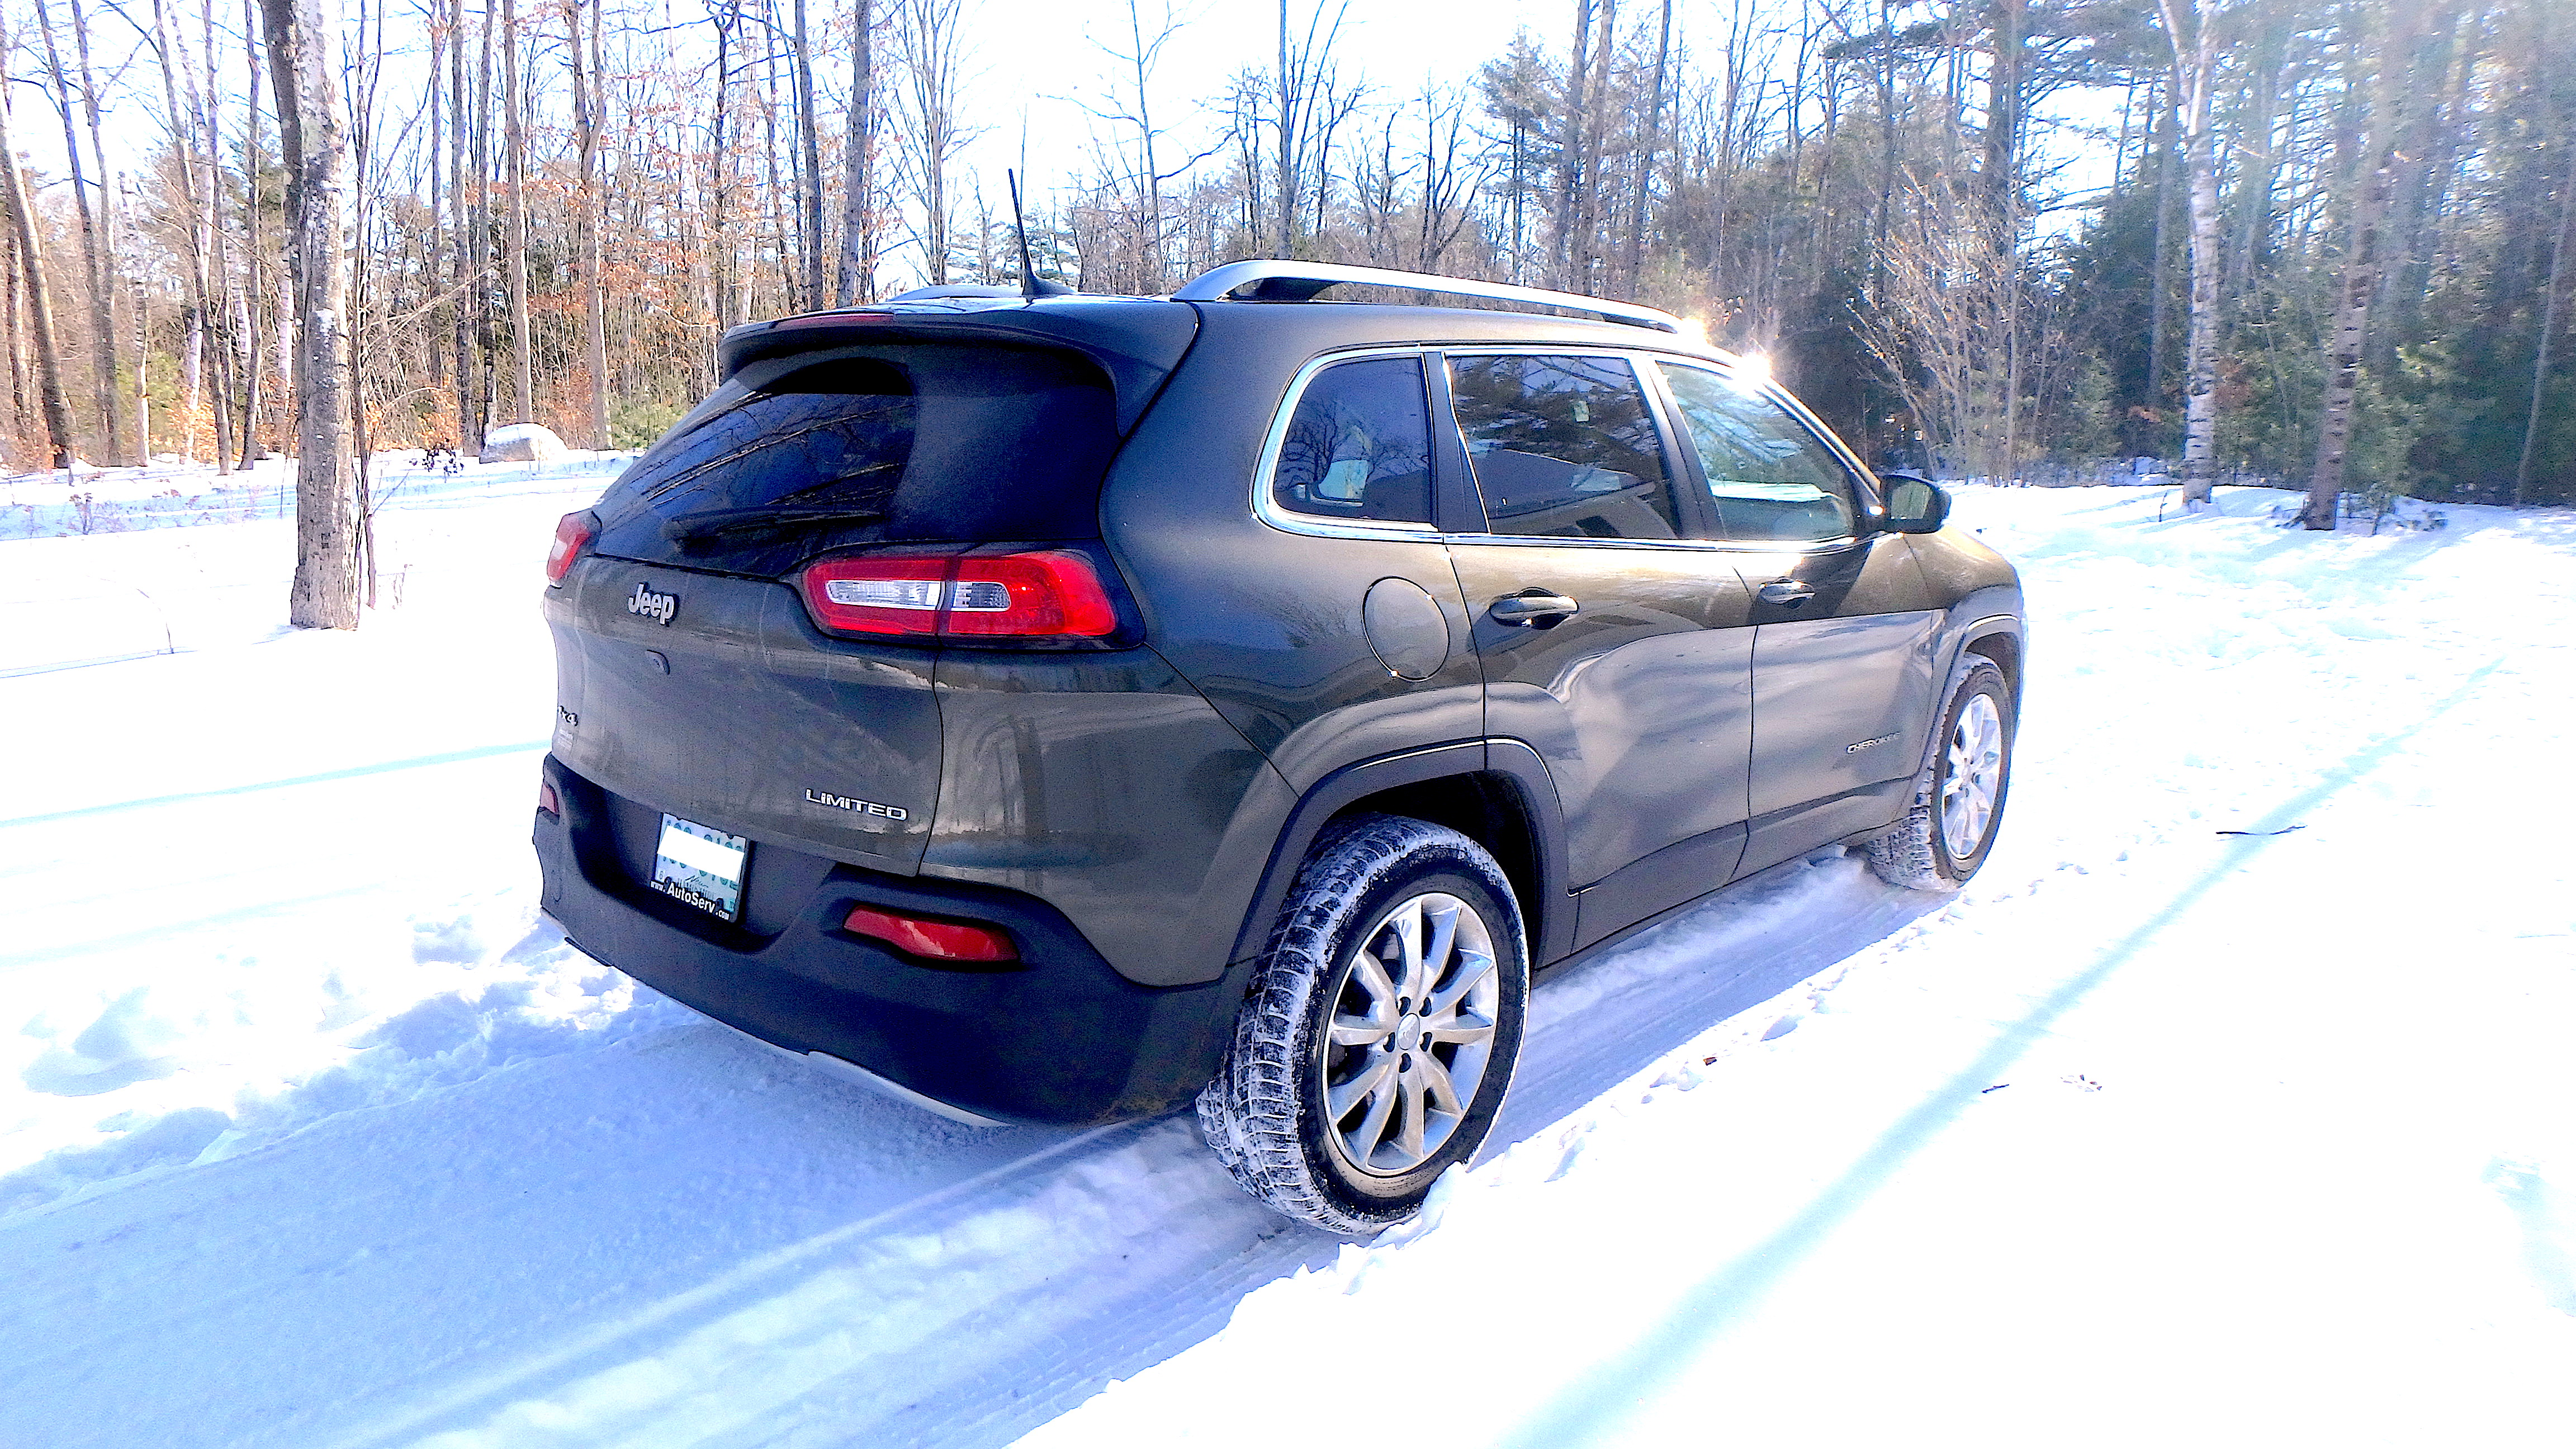 Introducing our latest addition – my long-awaited Jeep ...